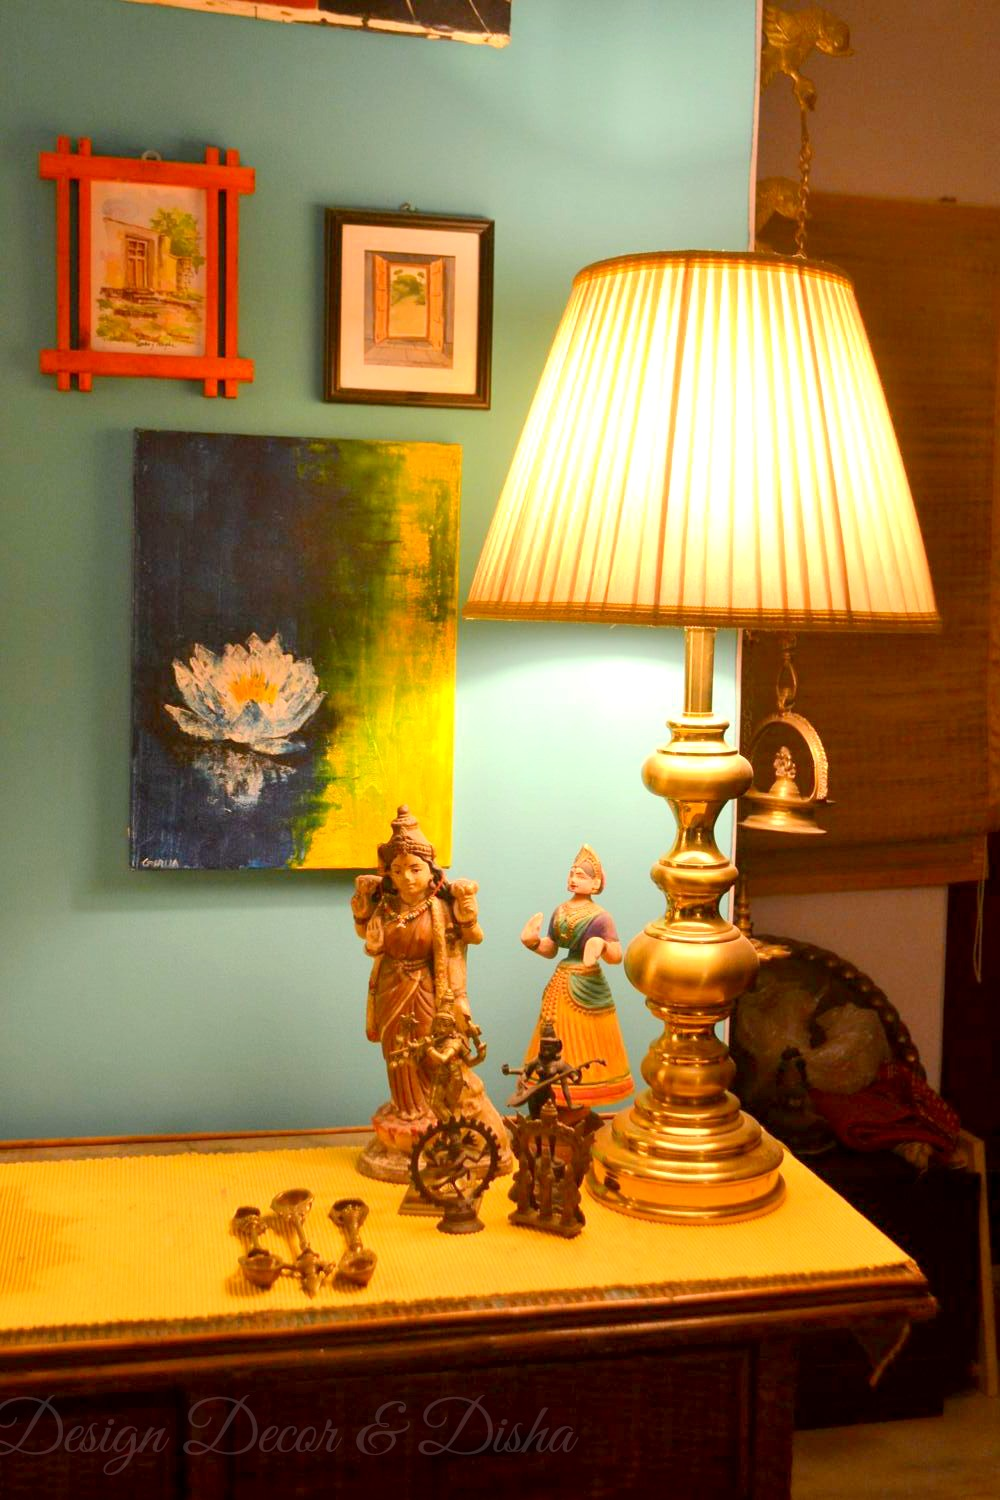 indian home decor photos design decor amp disha an indian design amp decor home 11578